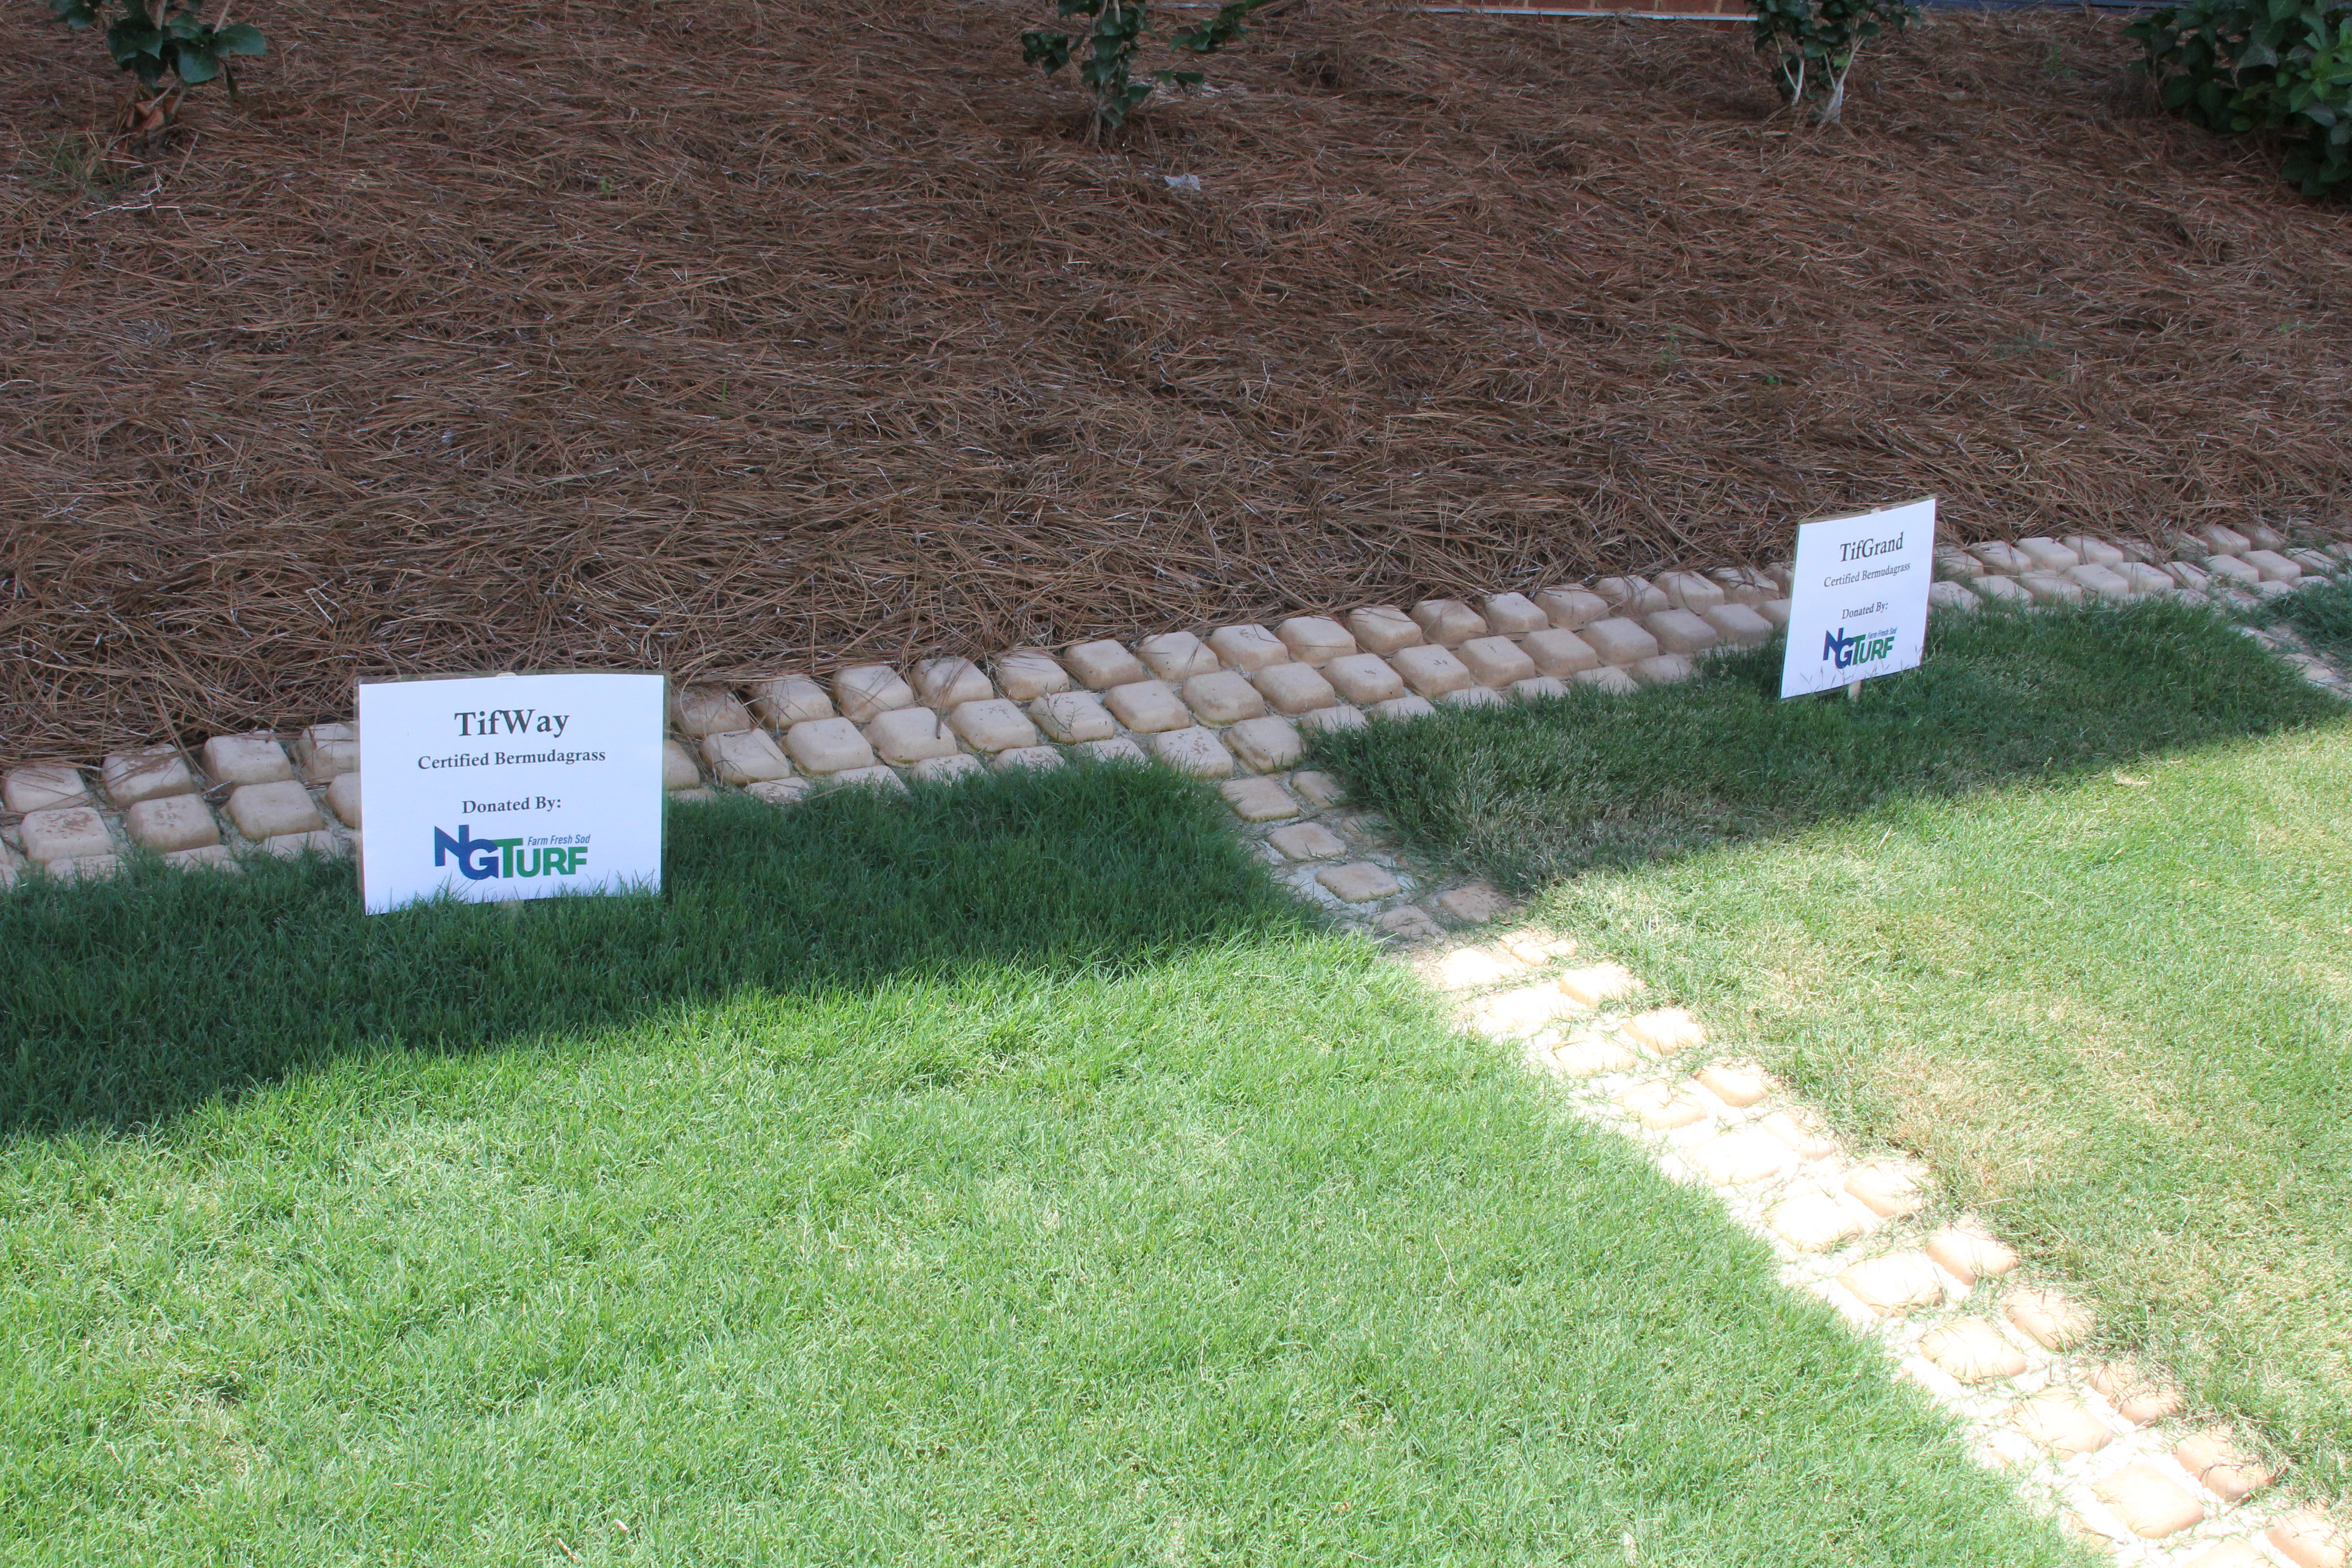 """Georgia turfgrasses are just beginning to """"green up,"""" a term used to describe the time when warm-season grasses like bermudagrass begin to turn green after the winter. Warm-season turf green-up is dependent on the soil temperature reaching 65 degrees Fahrenheit."""